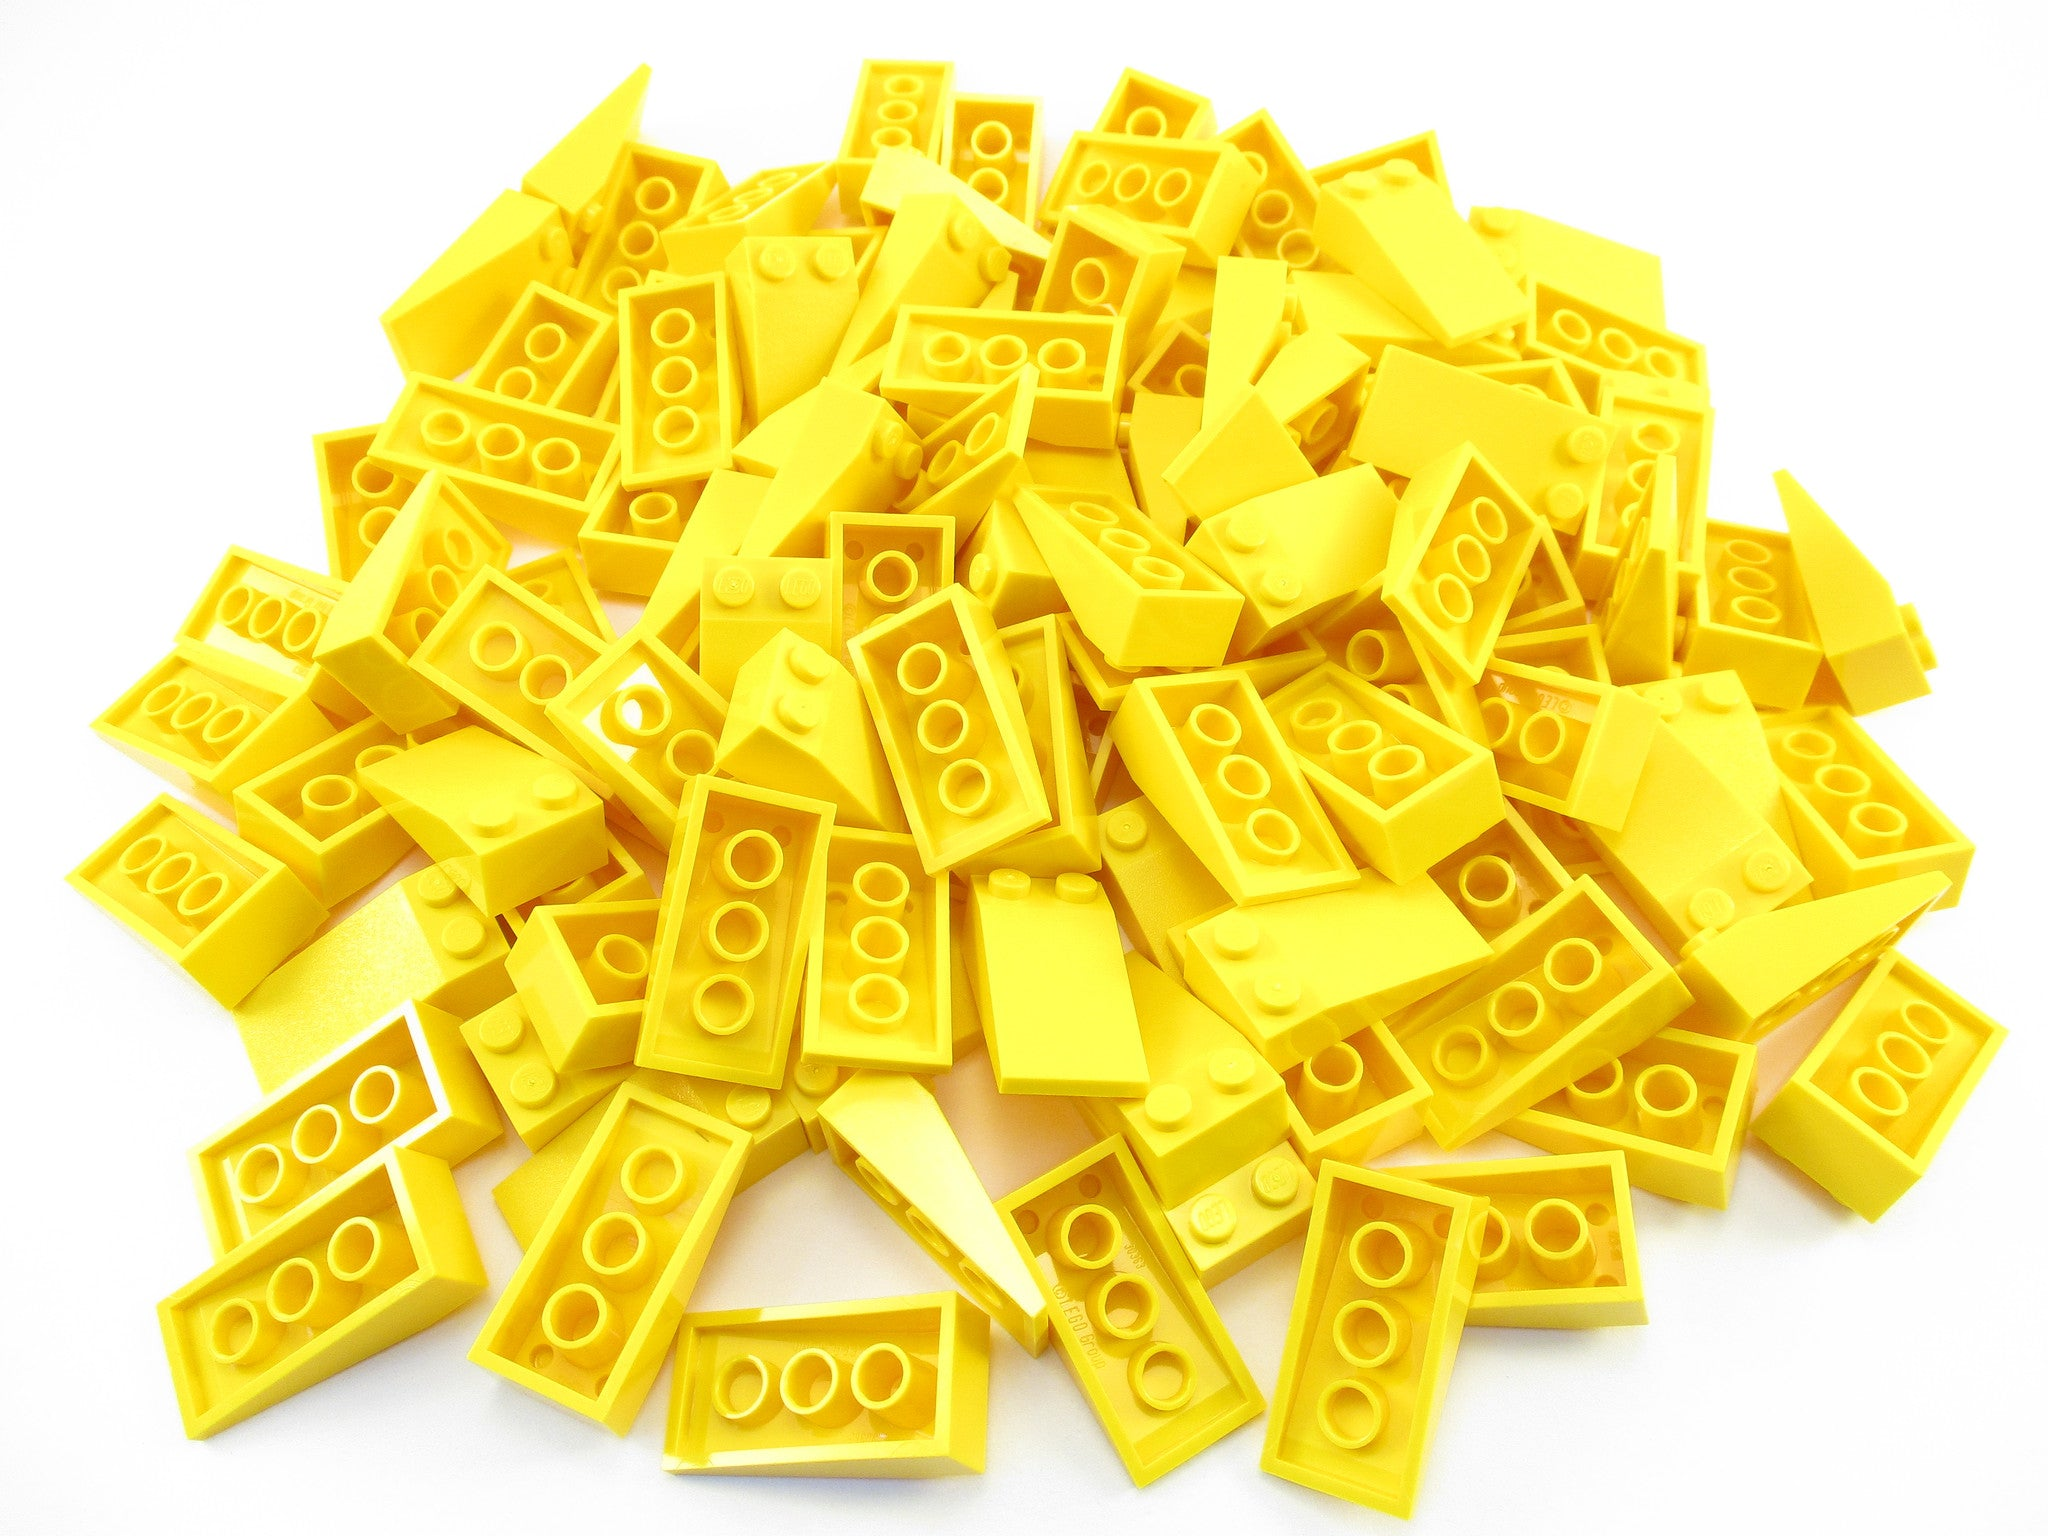 LEGO Yellow Slope 18 4x2 Lot of 50 Parts Pieces 30363